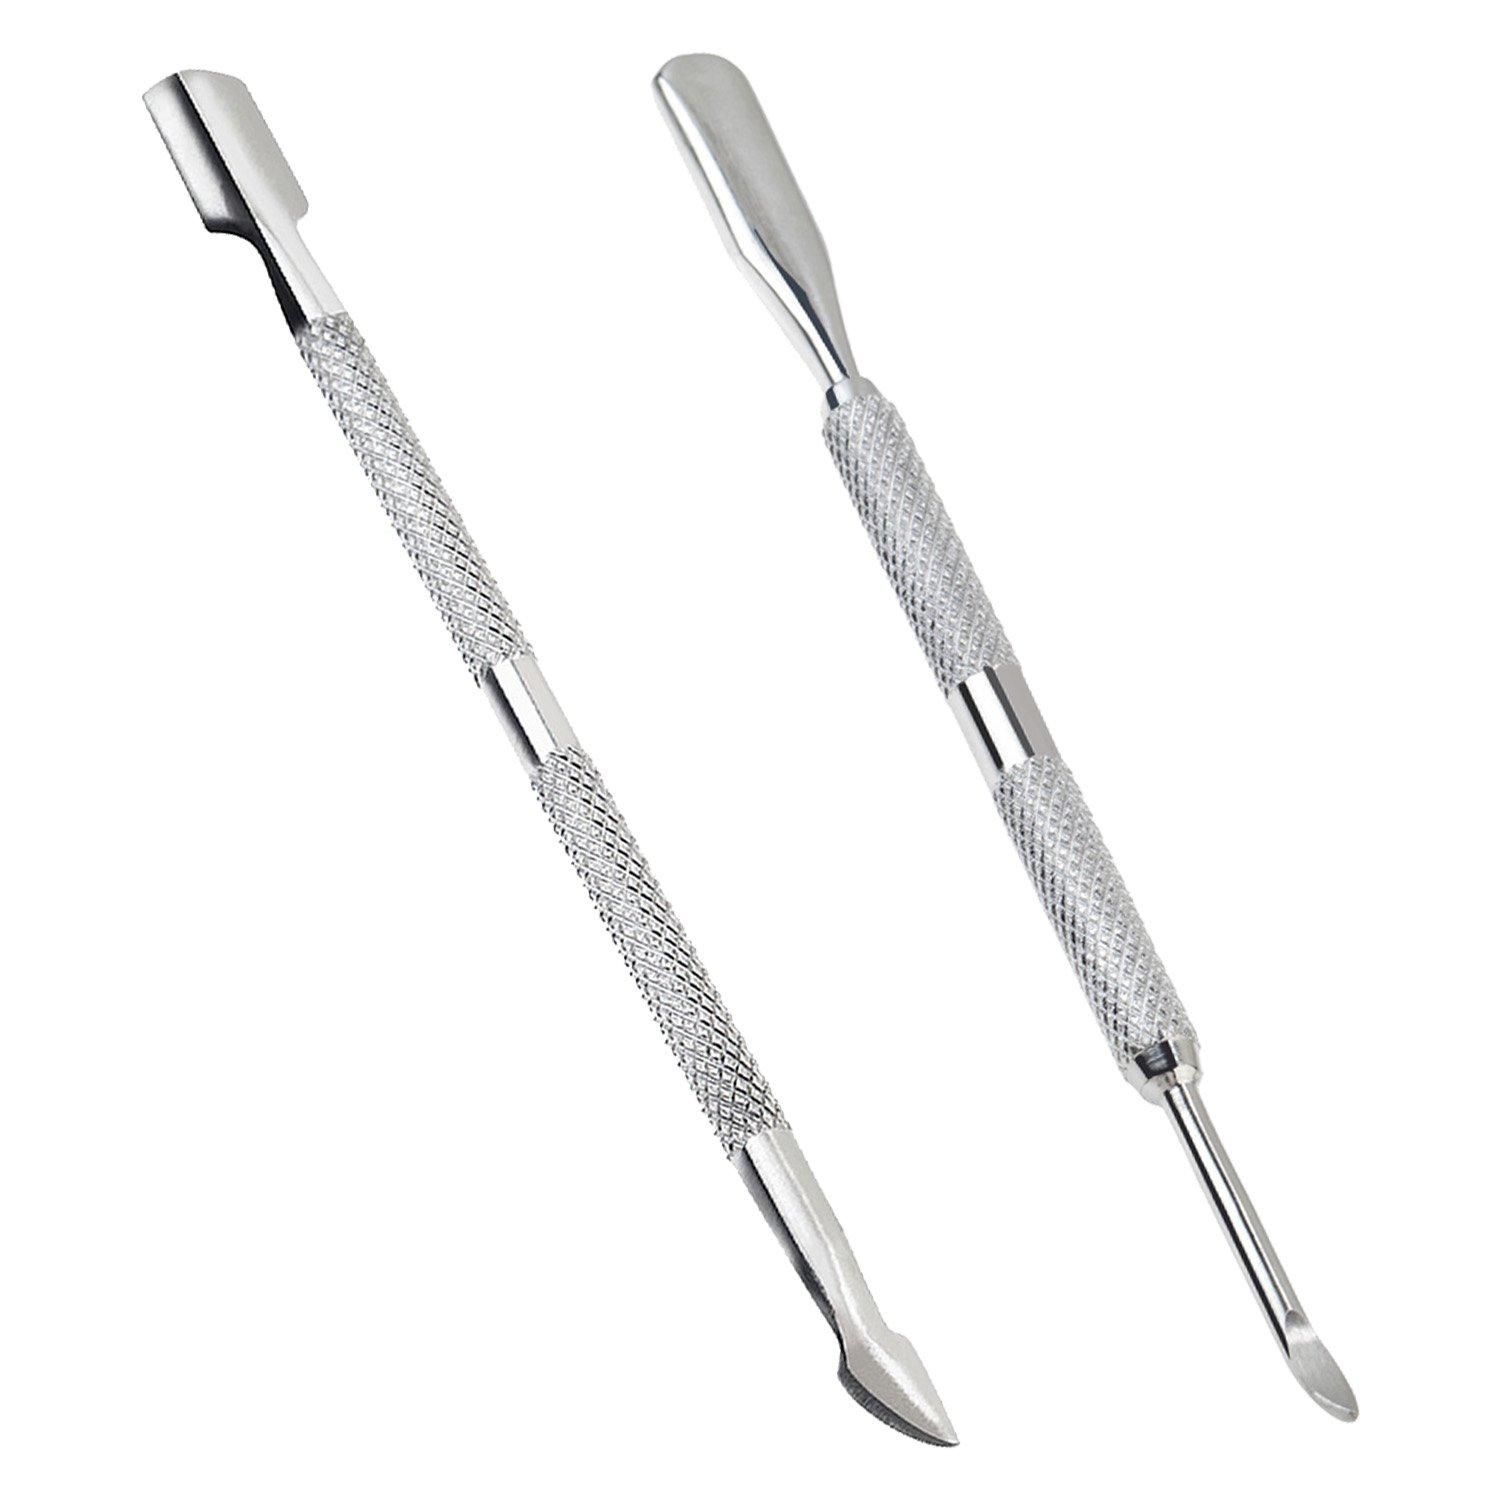 Premium Quality Manicure Pedicure Set Kit With 2 Stainless Steel Cuticle Pusher Scraper Cutter By VAGA®